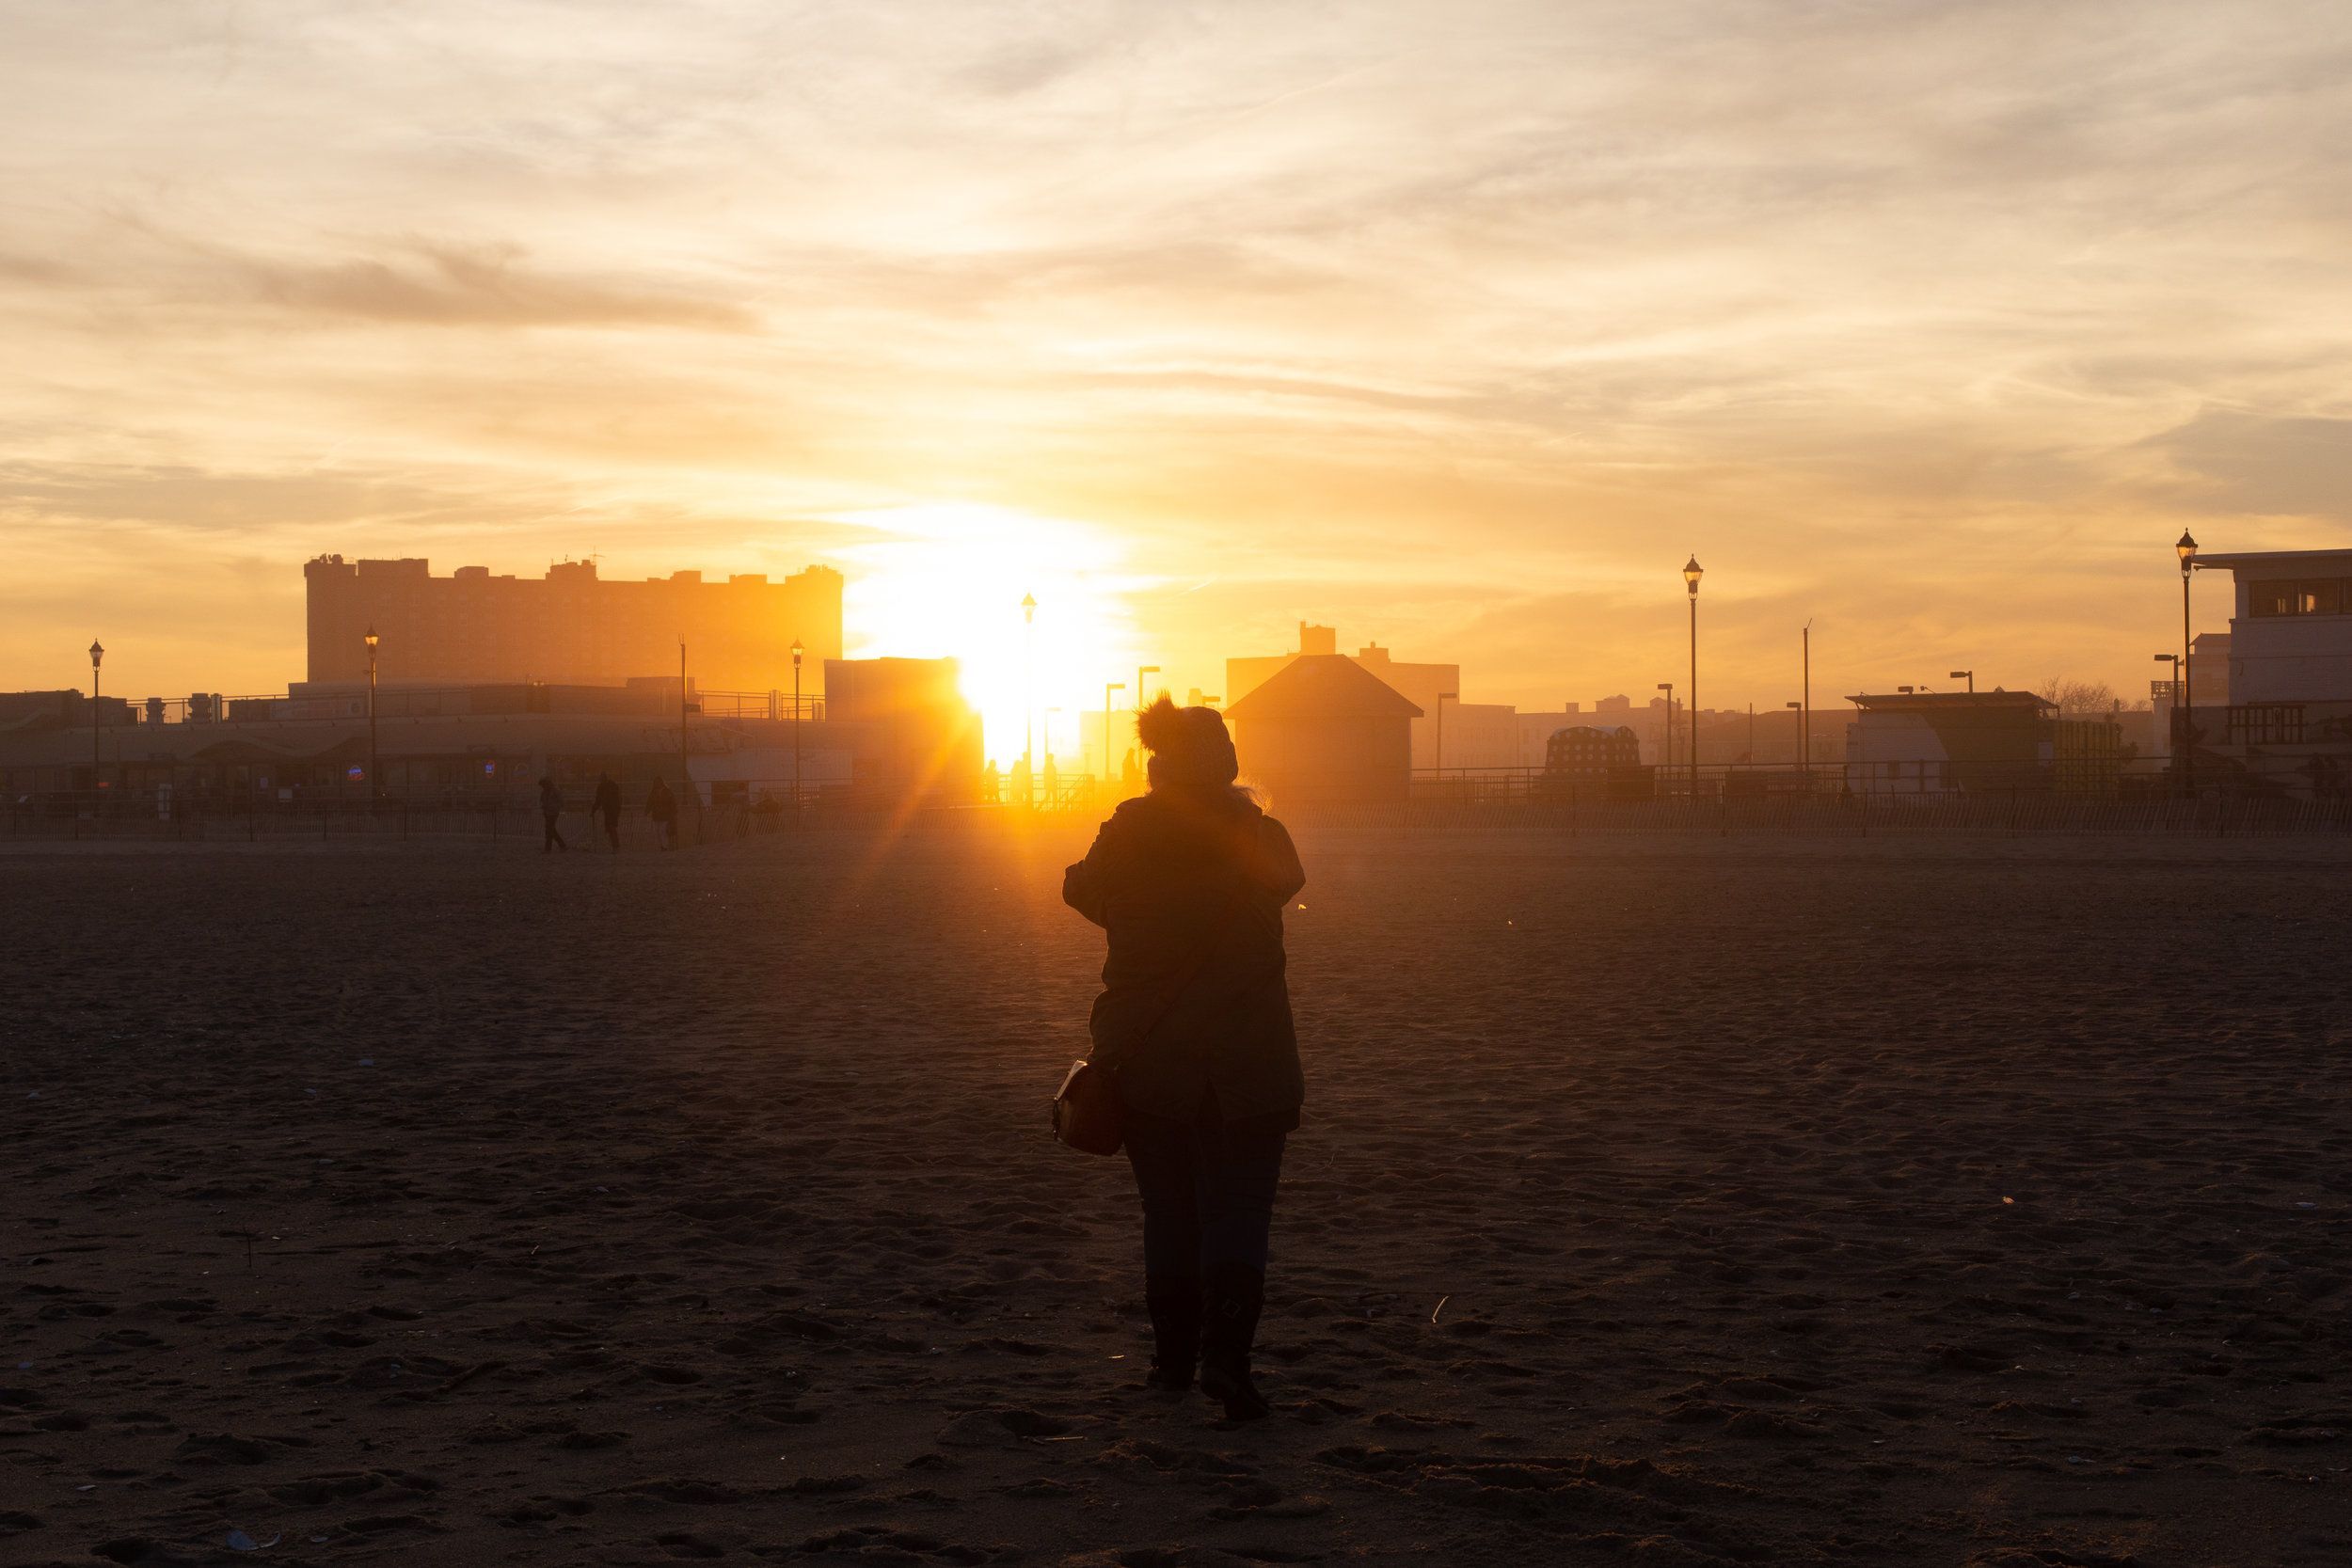 Woman on beach at sunset in Asbury Park, New Jersey. Photo by Kayleigh Ann Archbold.